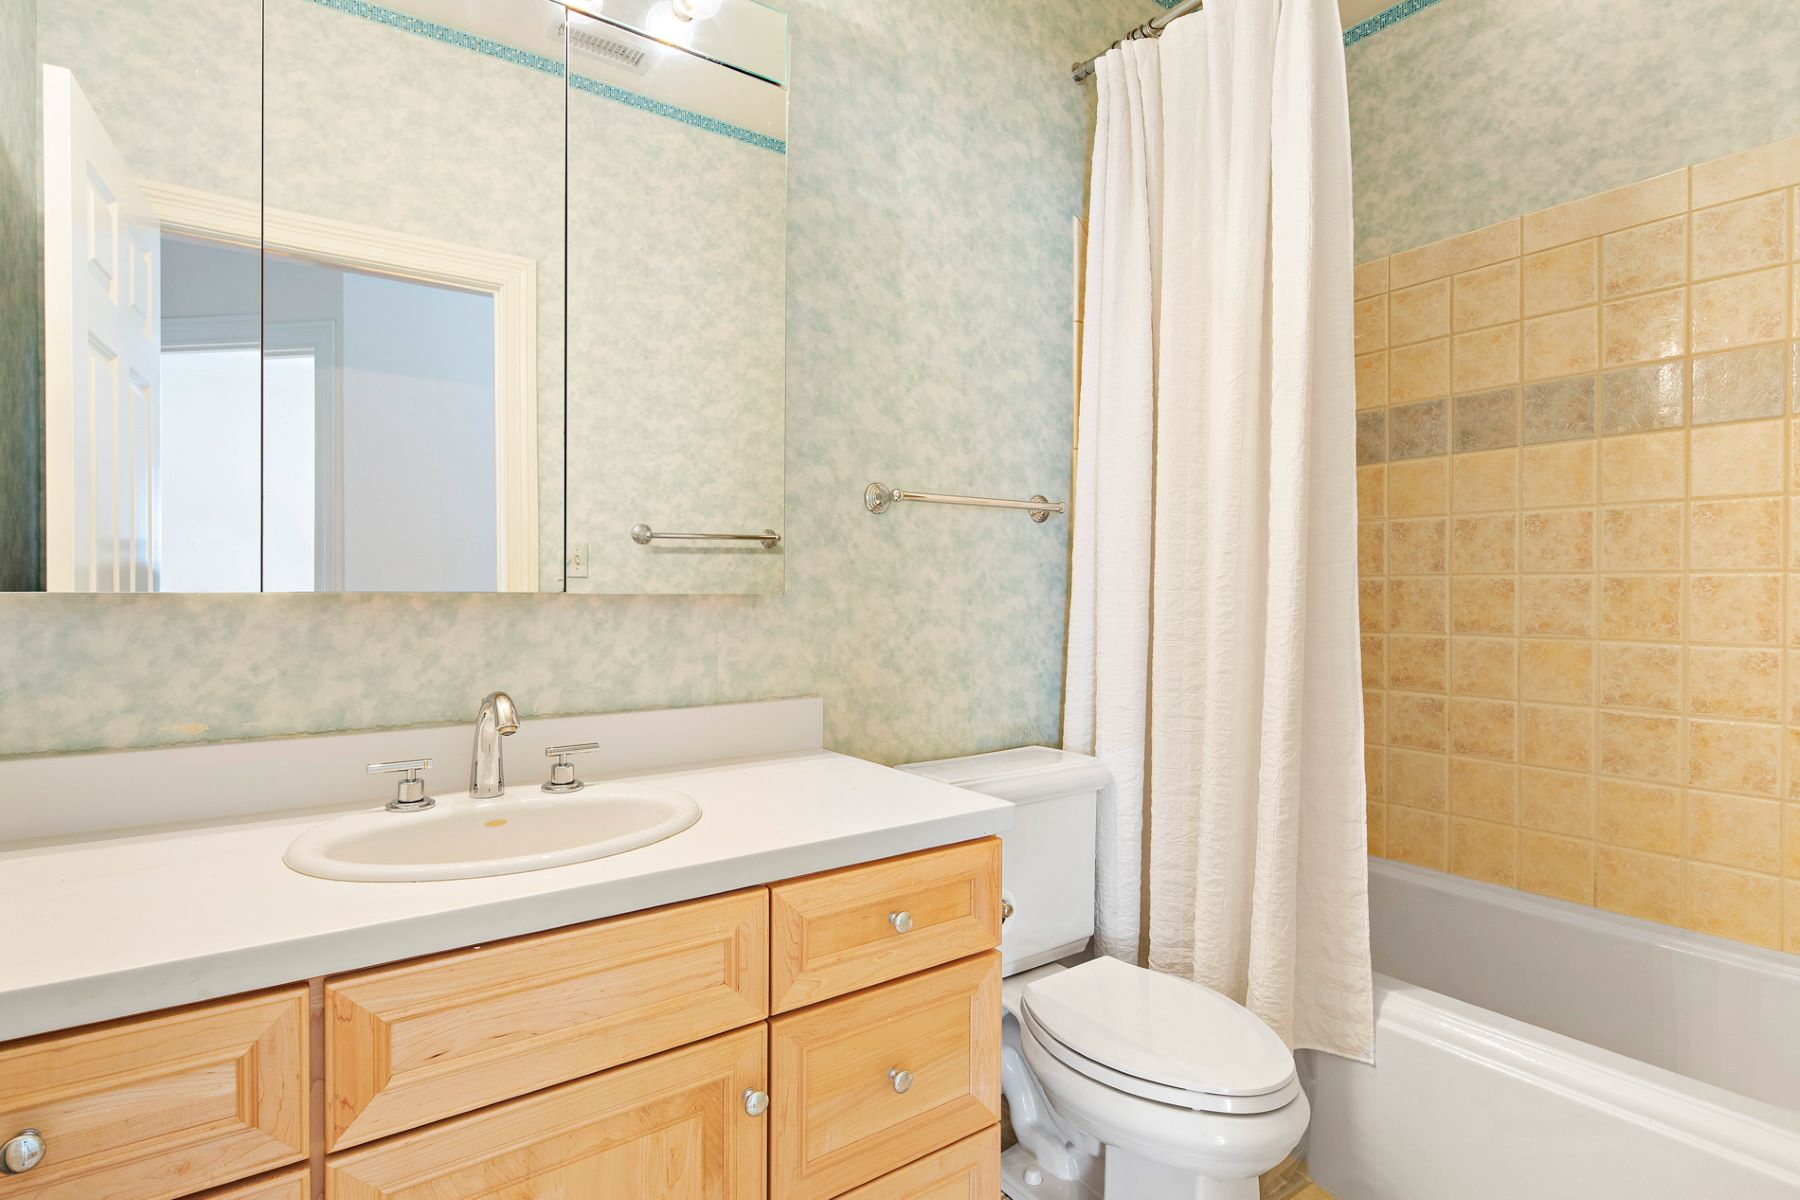 Additional photo for property listing at Gay Ave 248 Gay Ave Clayton, Missouri 63105 United States